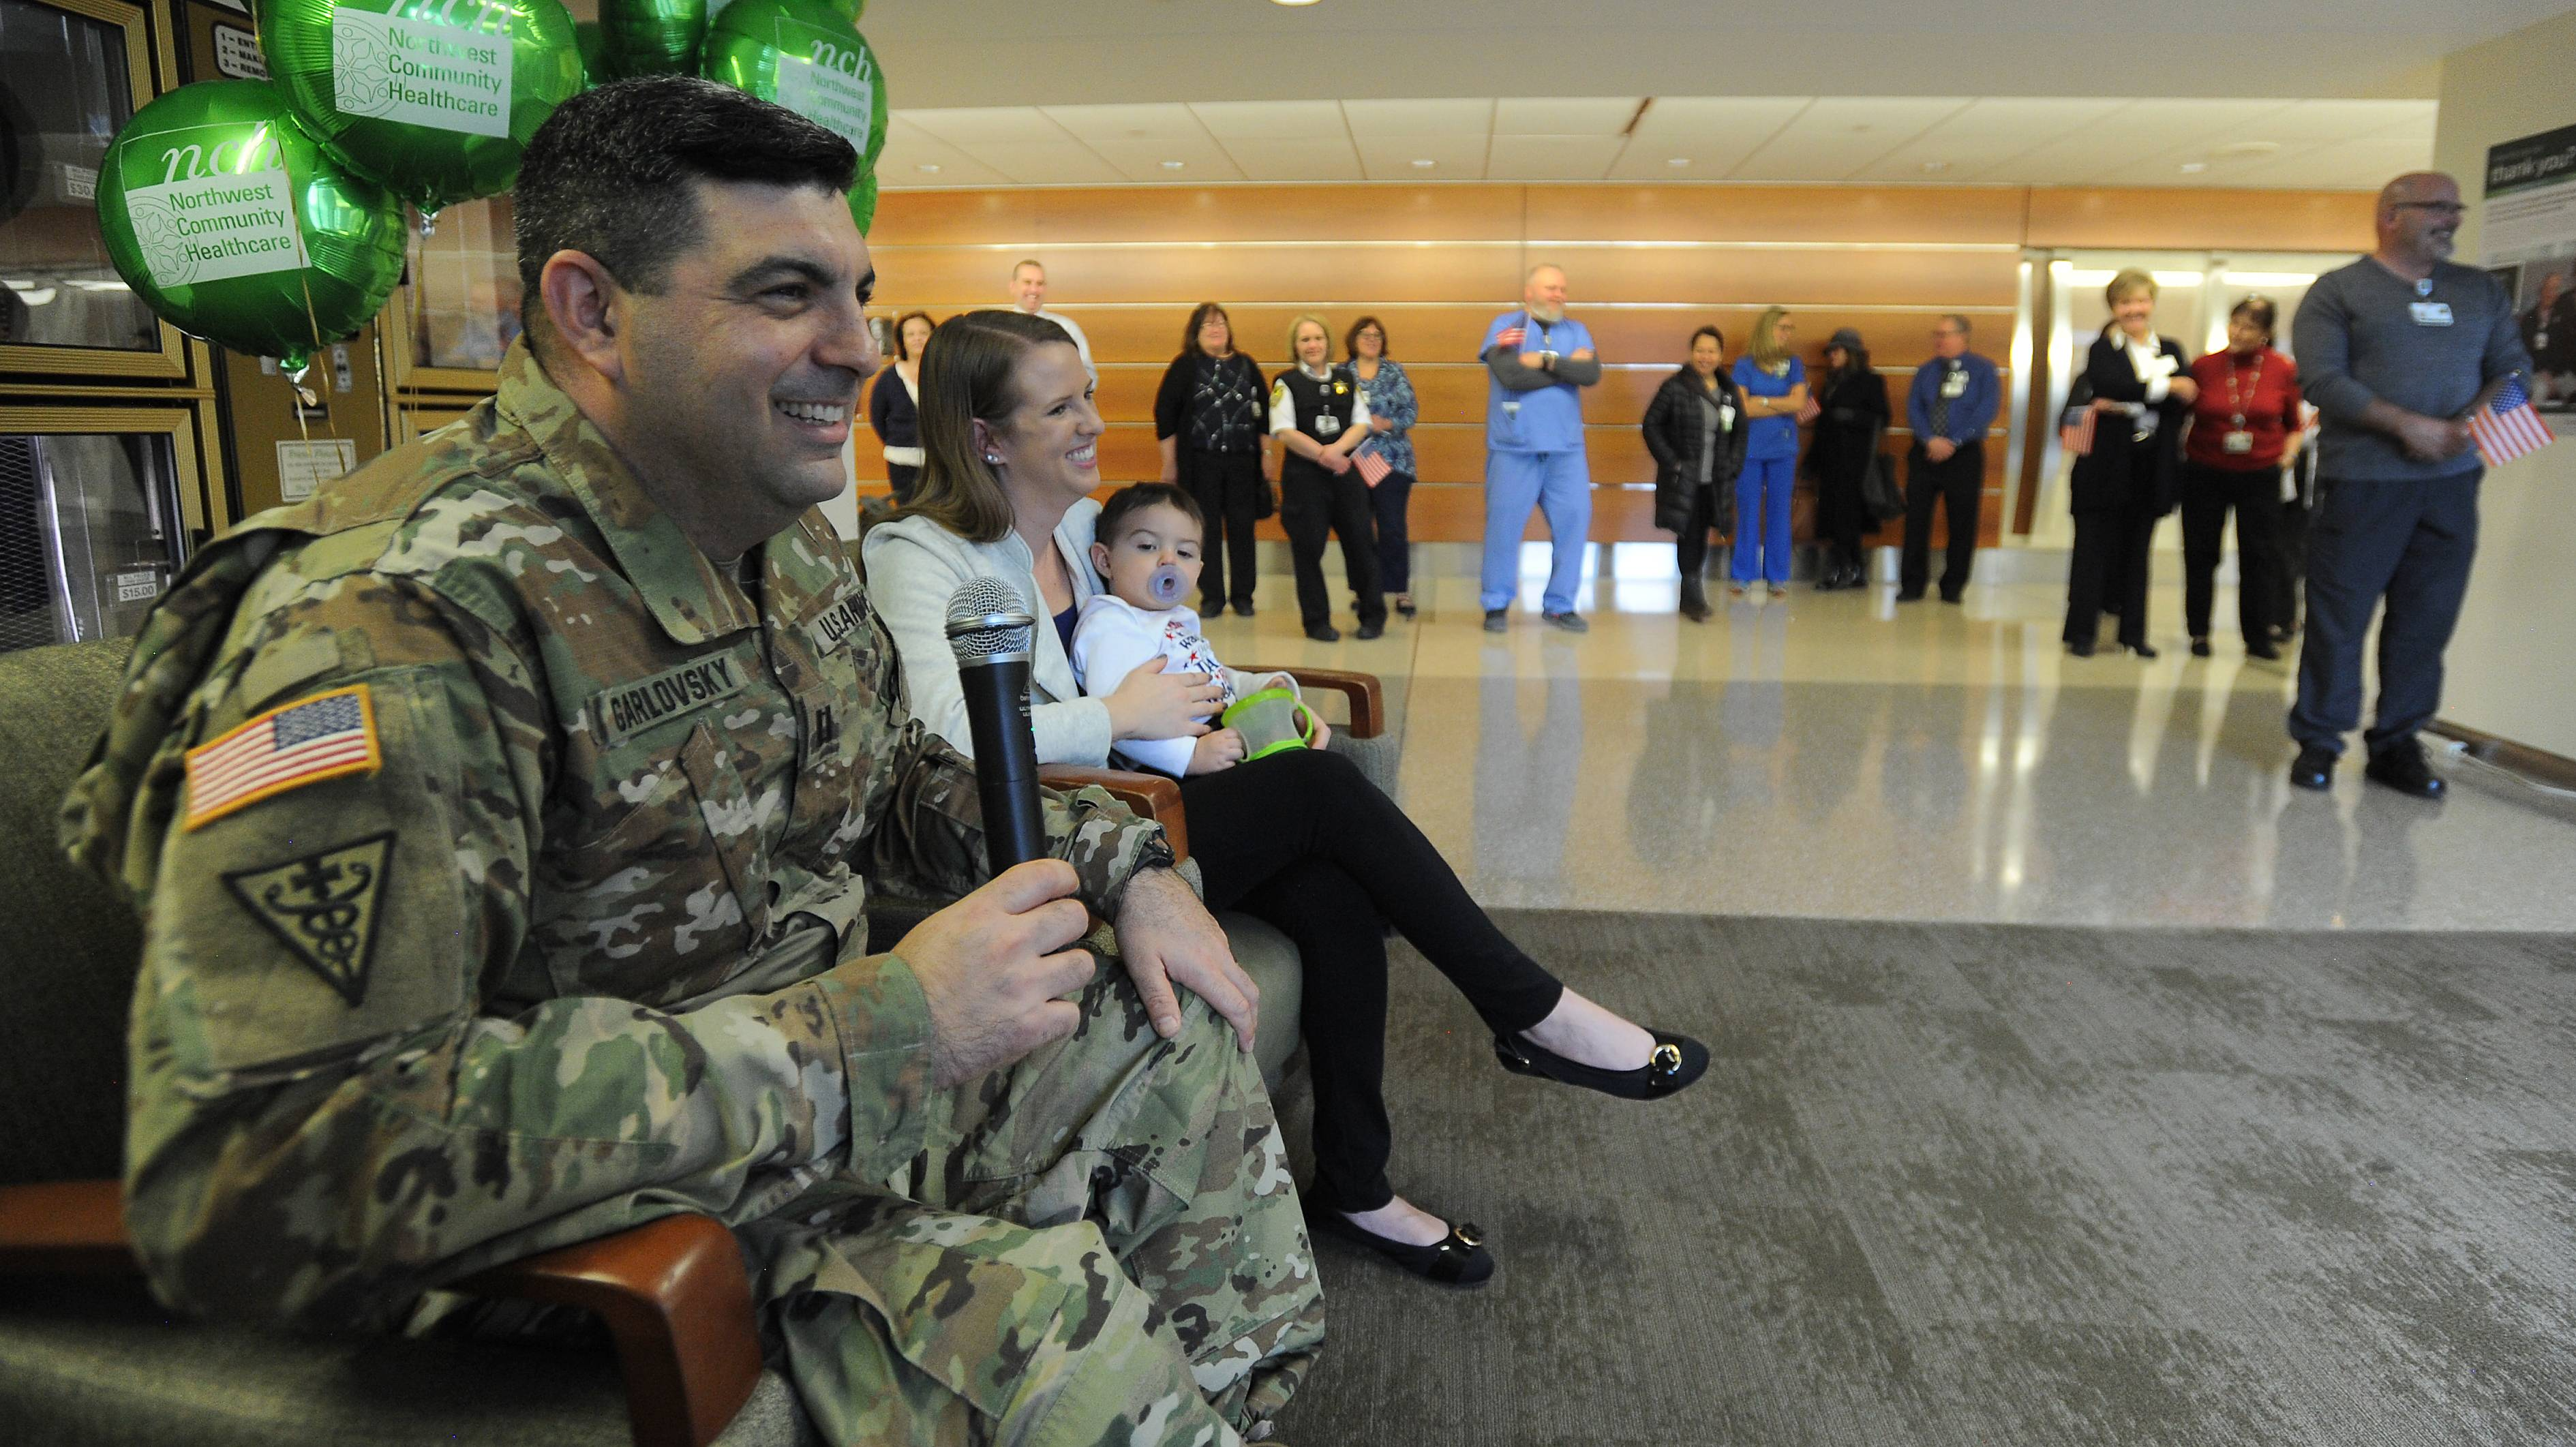 Dr. Jonathan Garlovsky talks to fellow Northwest Community Hospital employees Monday in Arlington Heights about his three-month deployment in Kuwait with the U.S. Army Reserve.